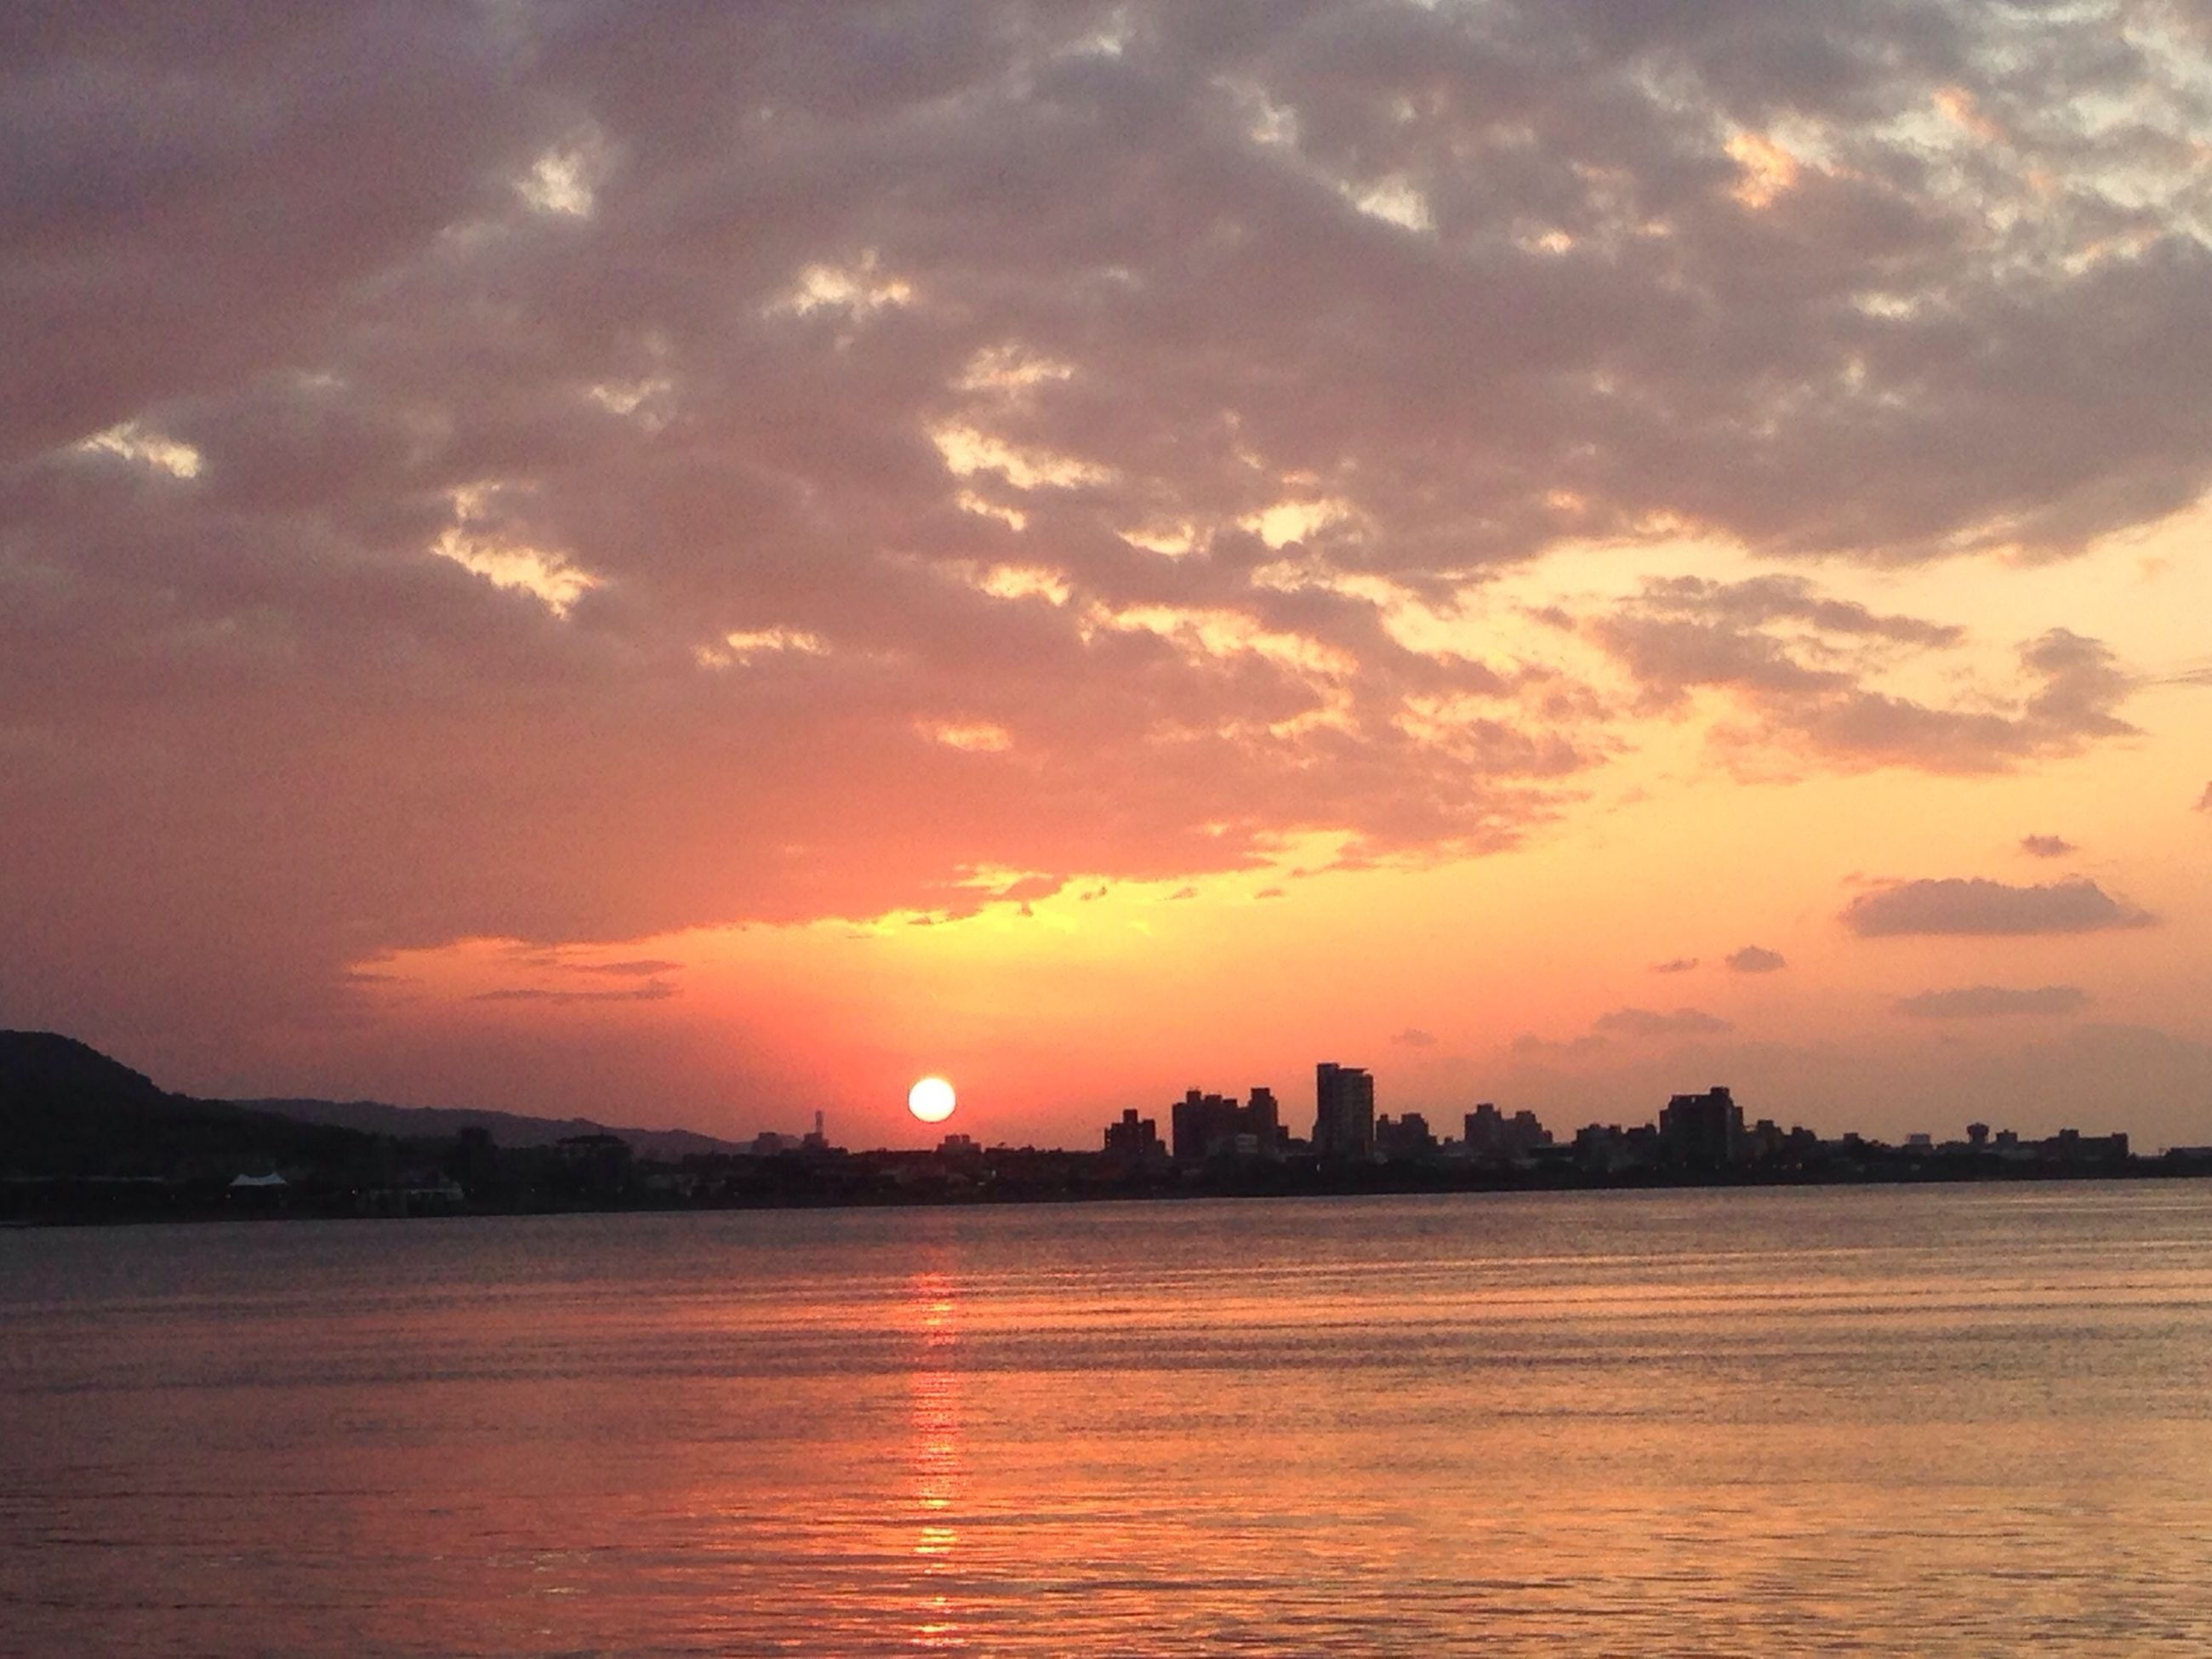 sunset, waterfront, water, orange color, sky, scenics, silhouette, sea, beauty in nature, building exterior, tranquil scene, sun, tranquility, architecture, cloud - sky, built structure, idyllic, reflection, nature, city